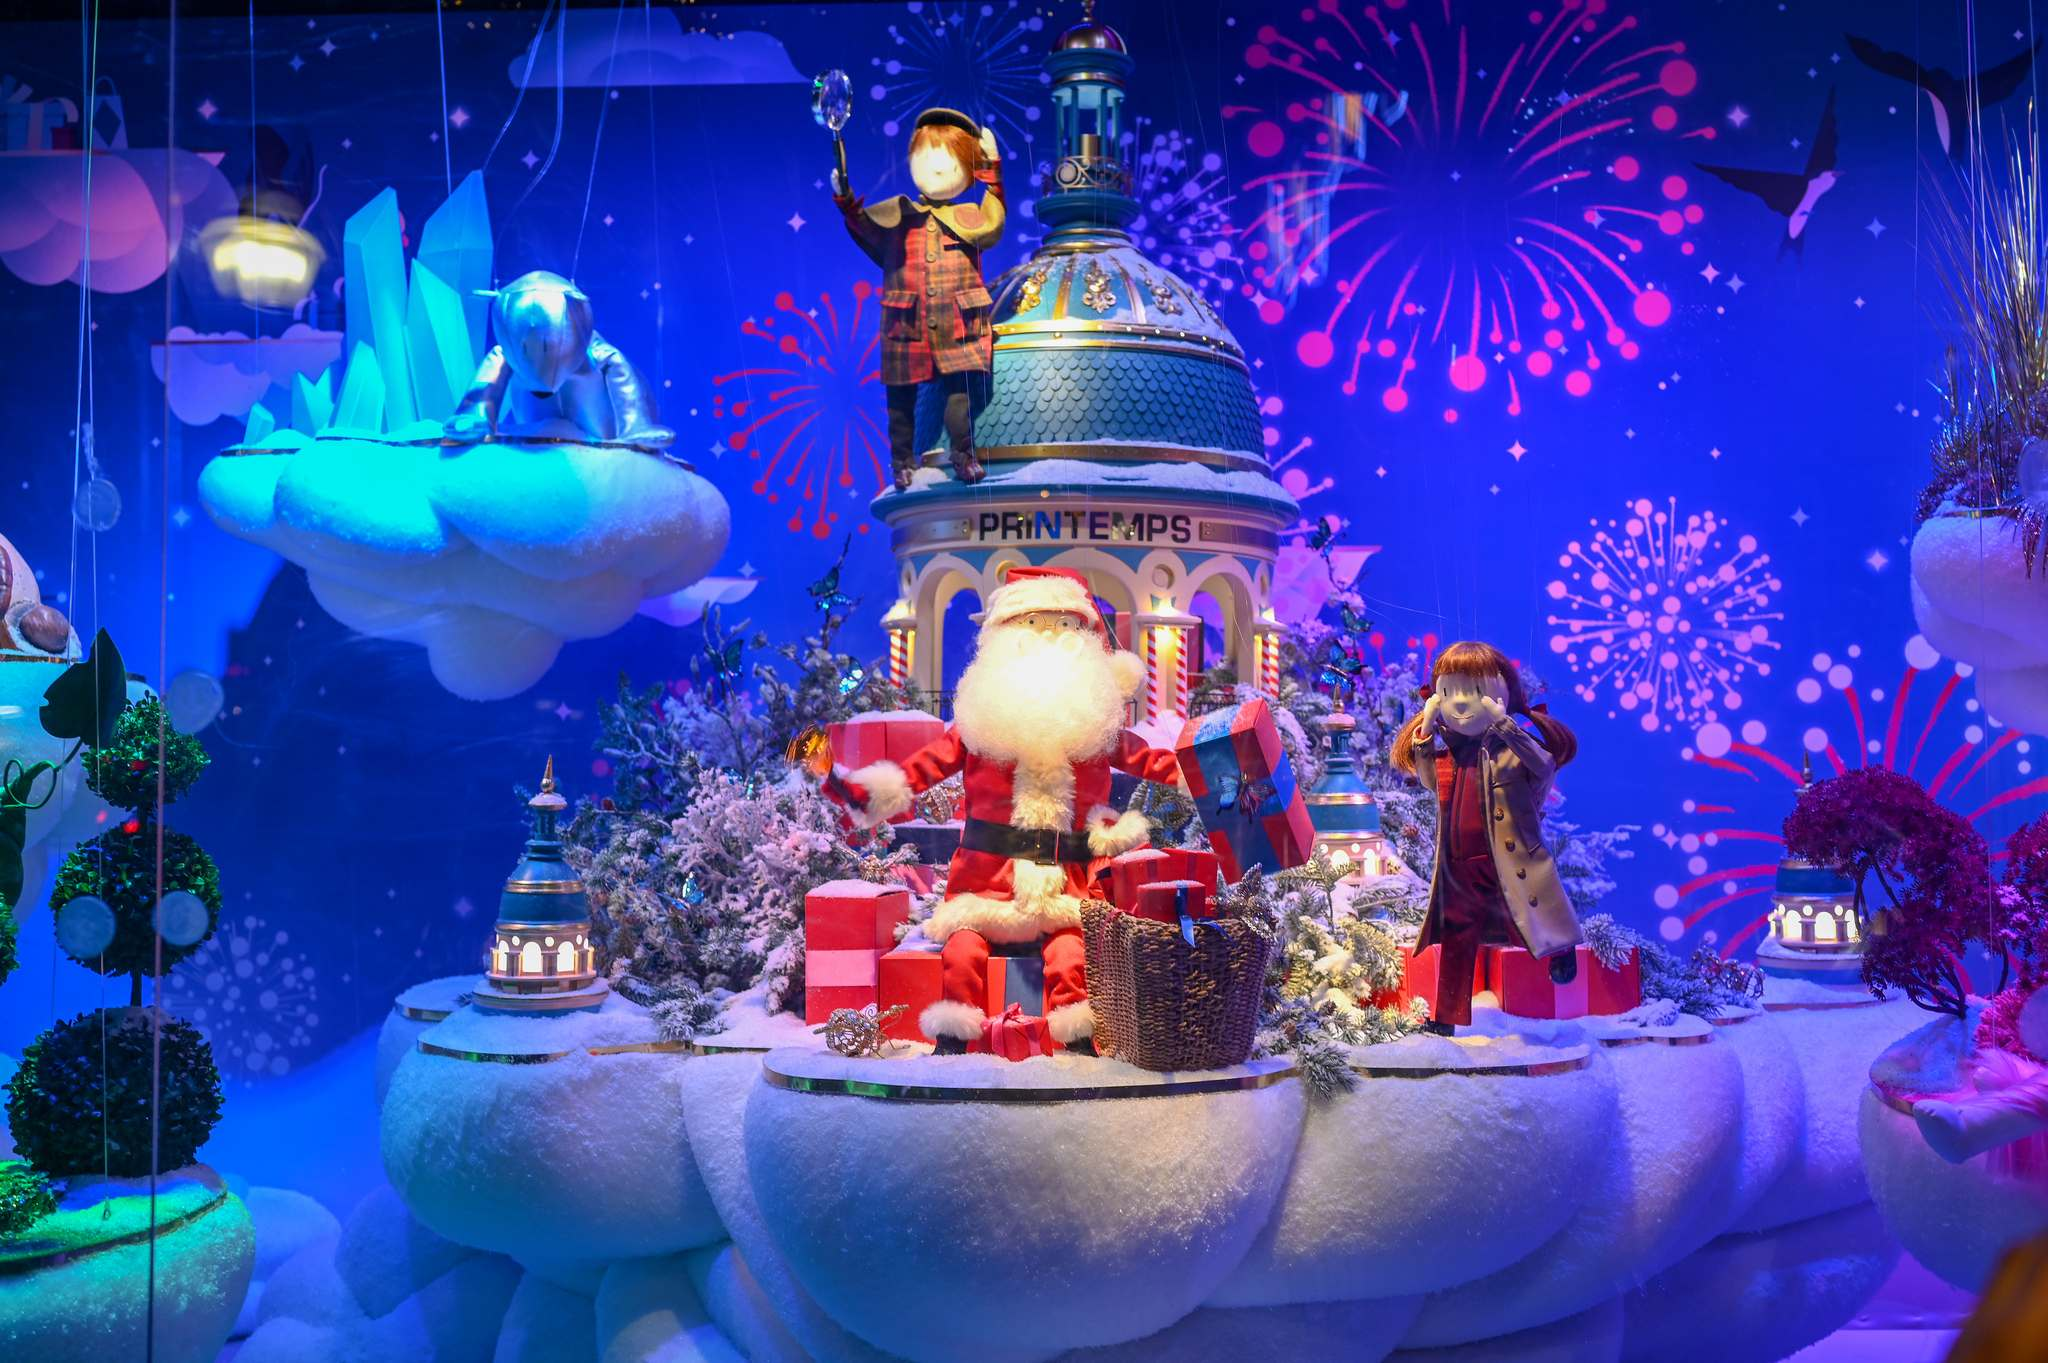 christmas windows Christmas windows in Paris